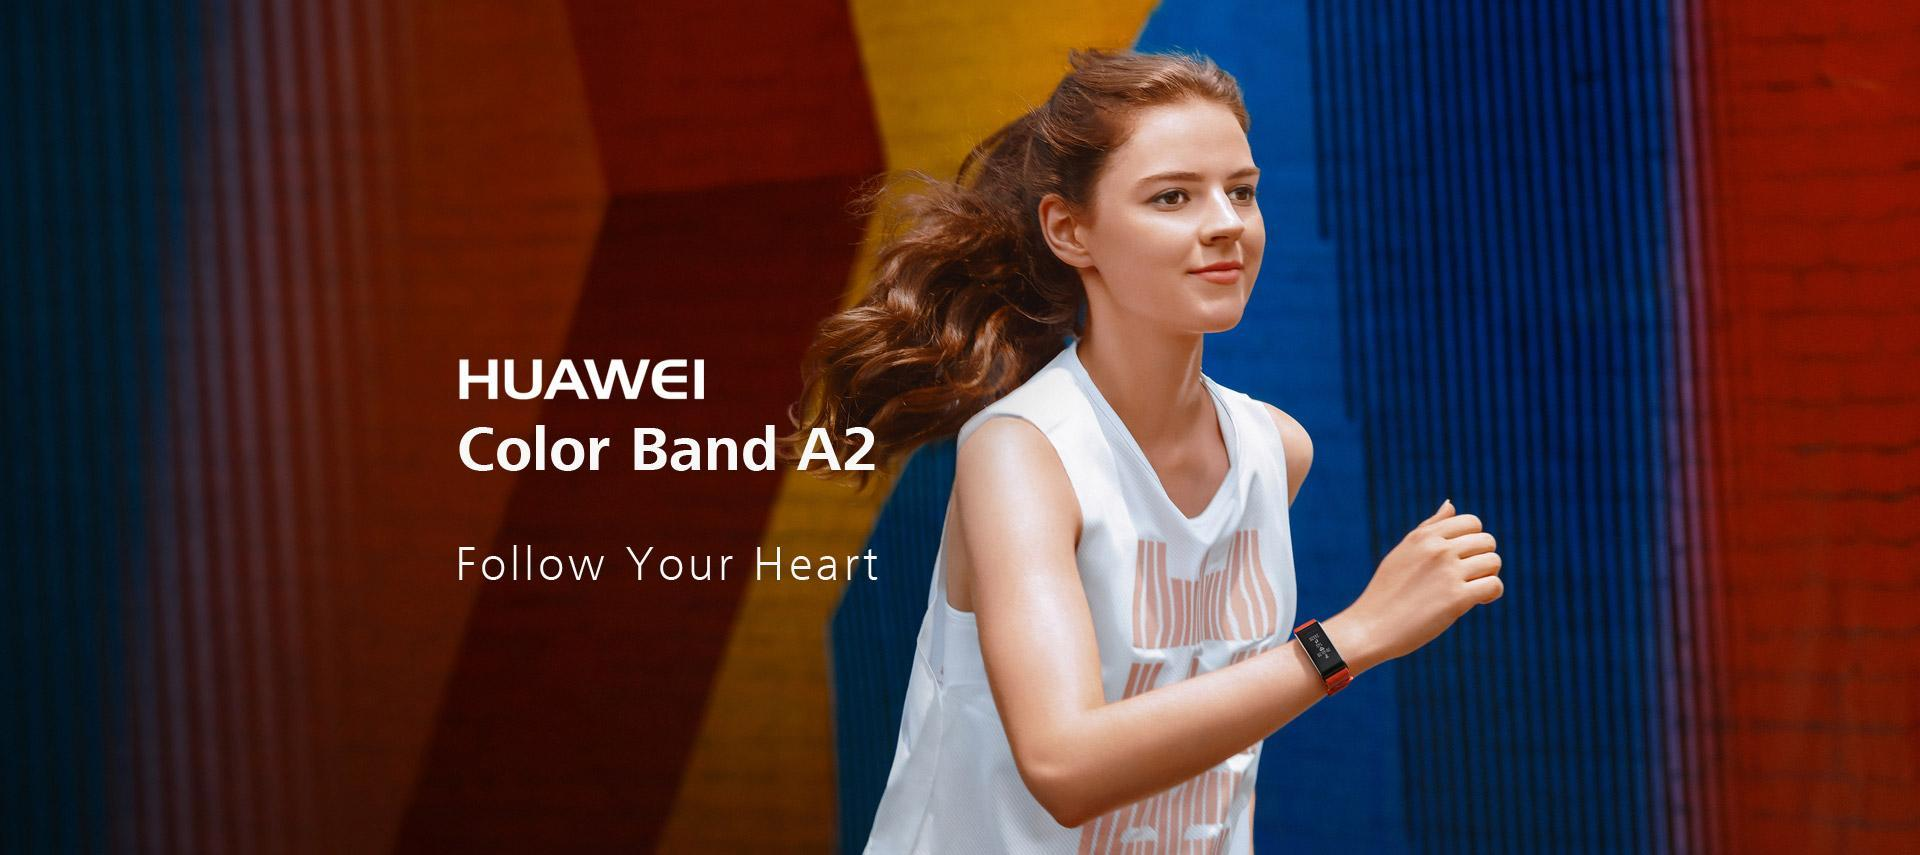 HUAWEI Color Band A2, heart rate monitor, fitness band | HUAWEI Global